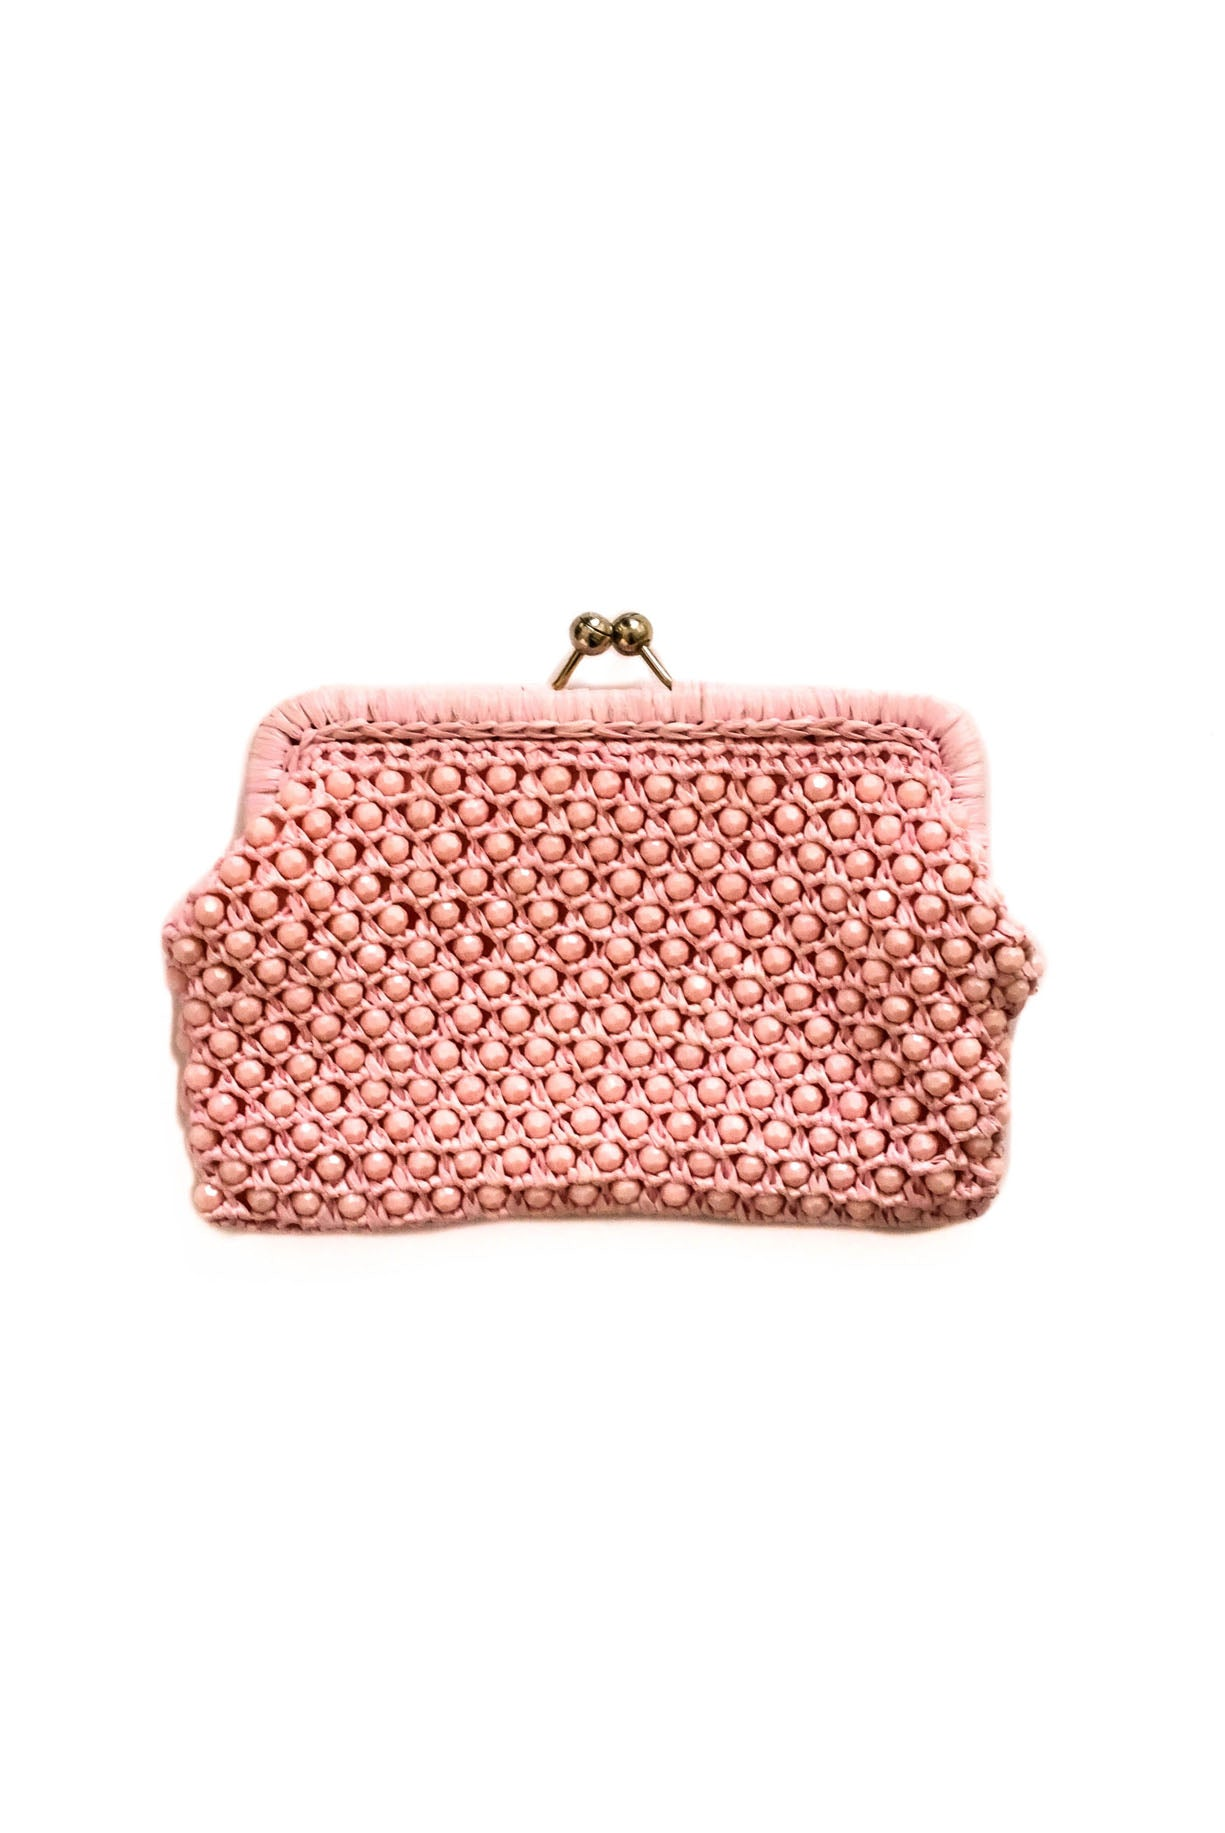 Vintage Pink Raffia Clutch from Sweet & Spark.